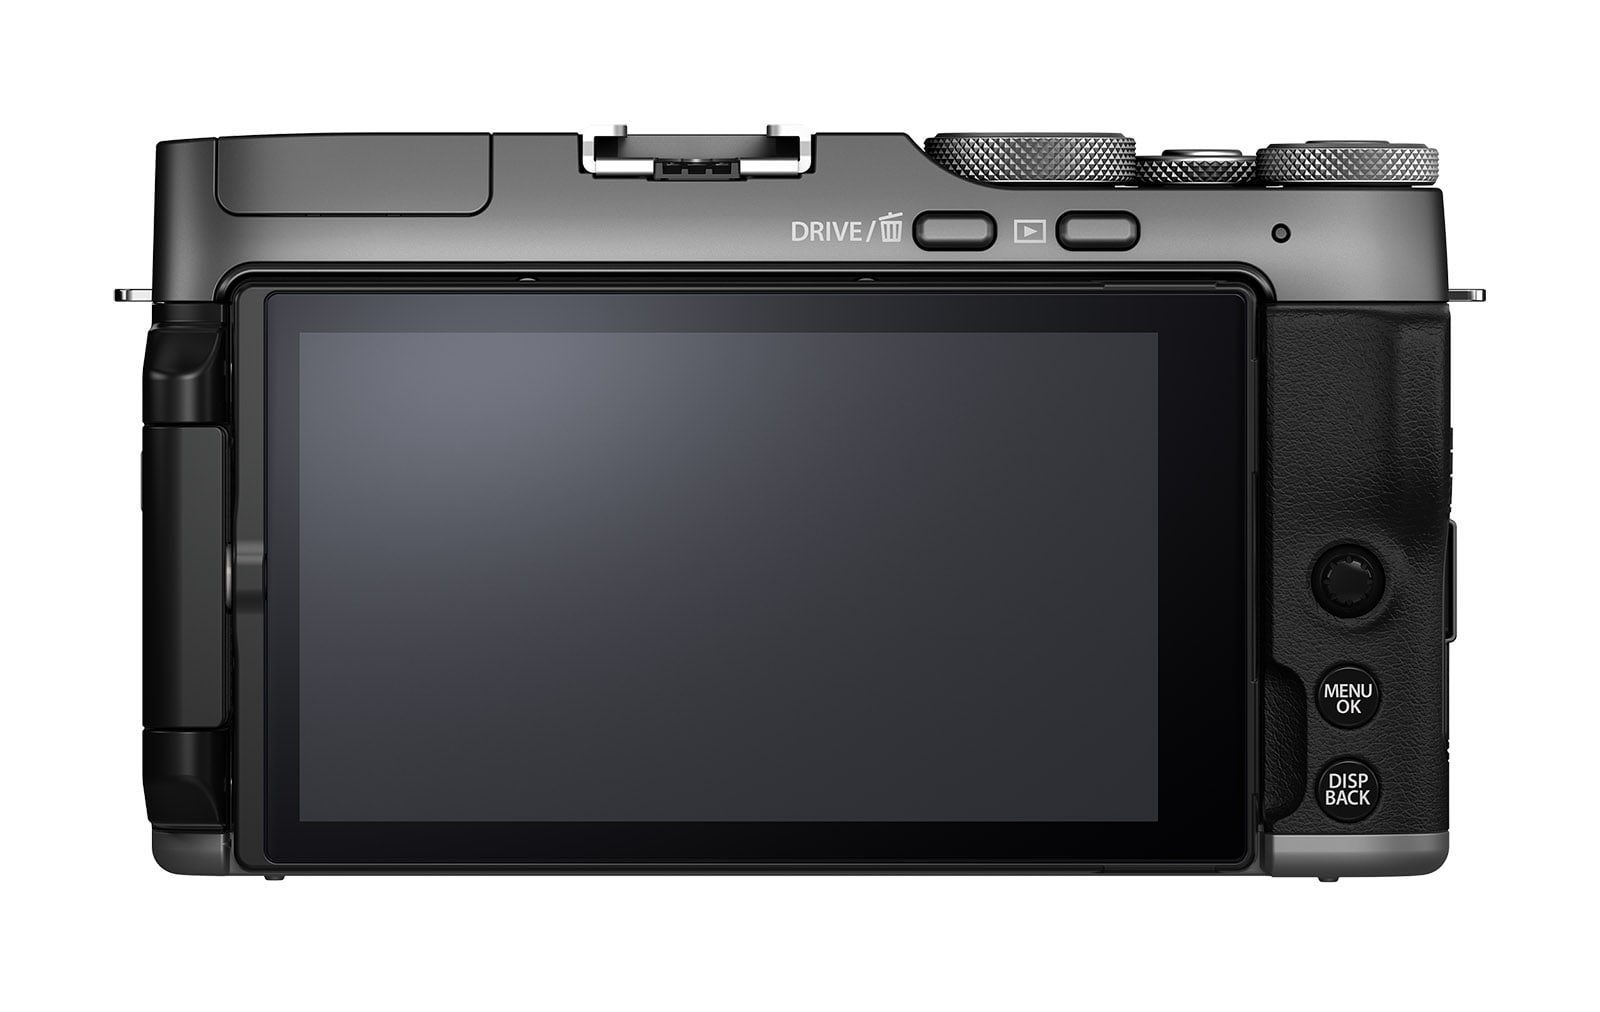 Fujifilm X-A7 aps-c mirrorless camera